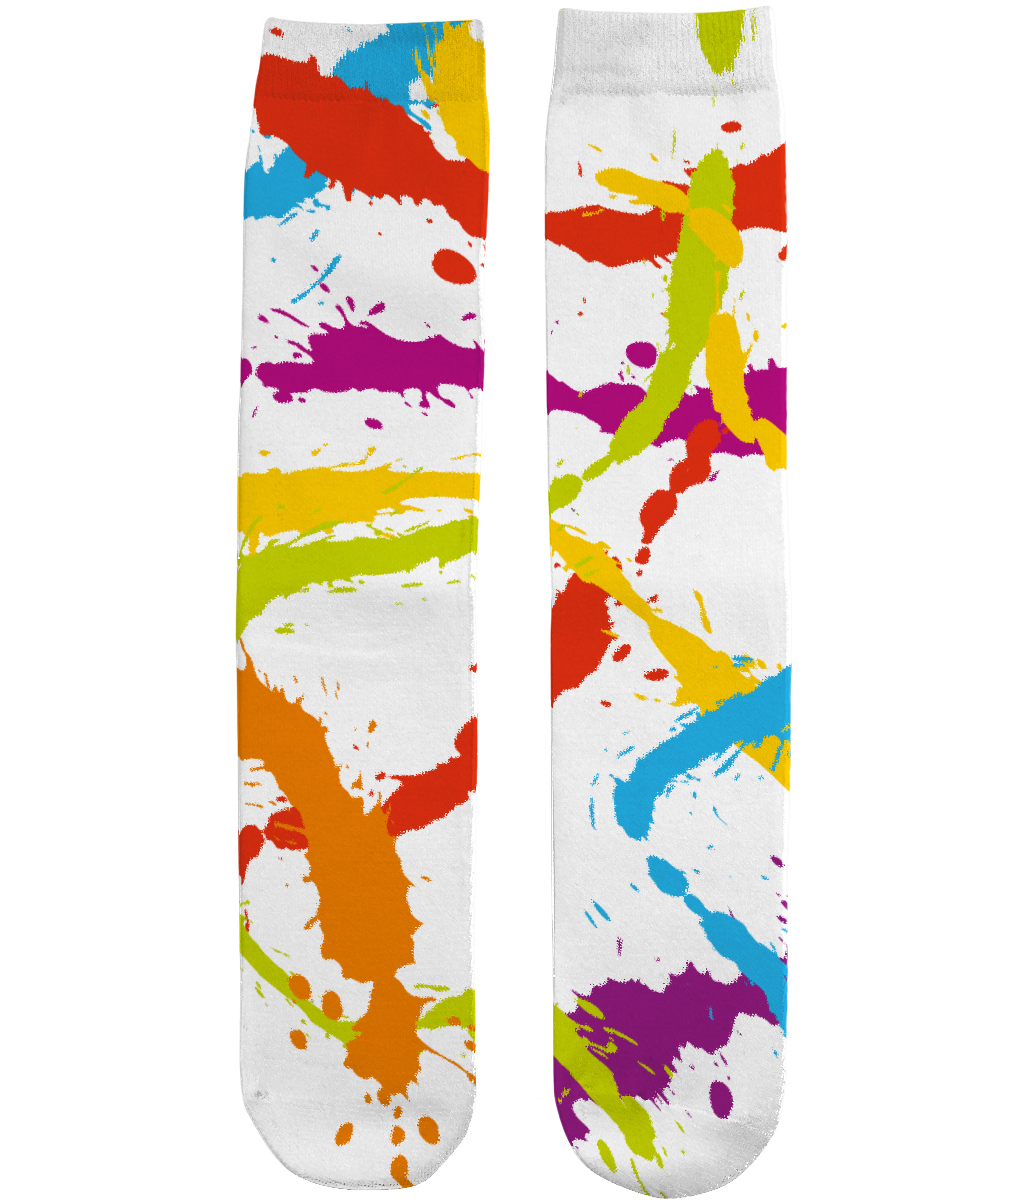 Splattered Rainbow [WHITE] - Unisex Sublimation Tube Socks by Daniel Bevis